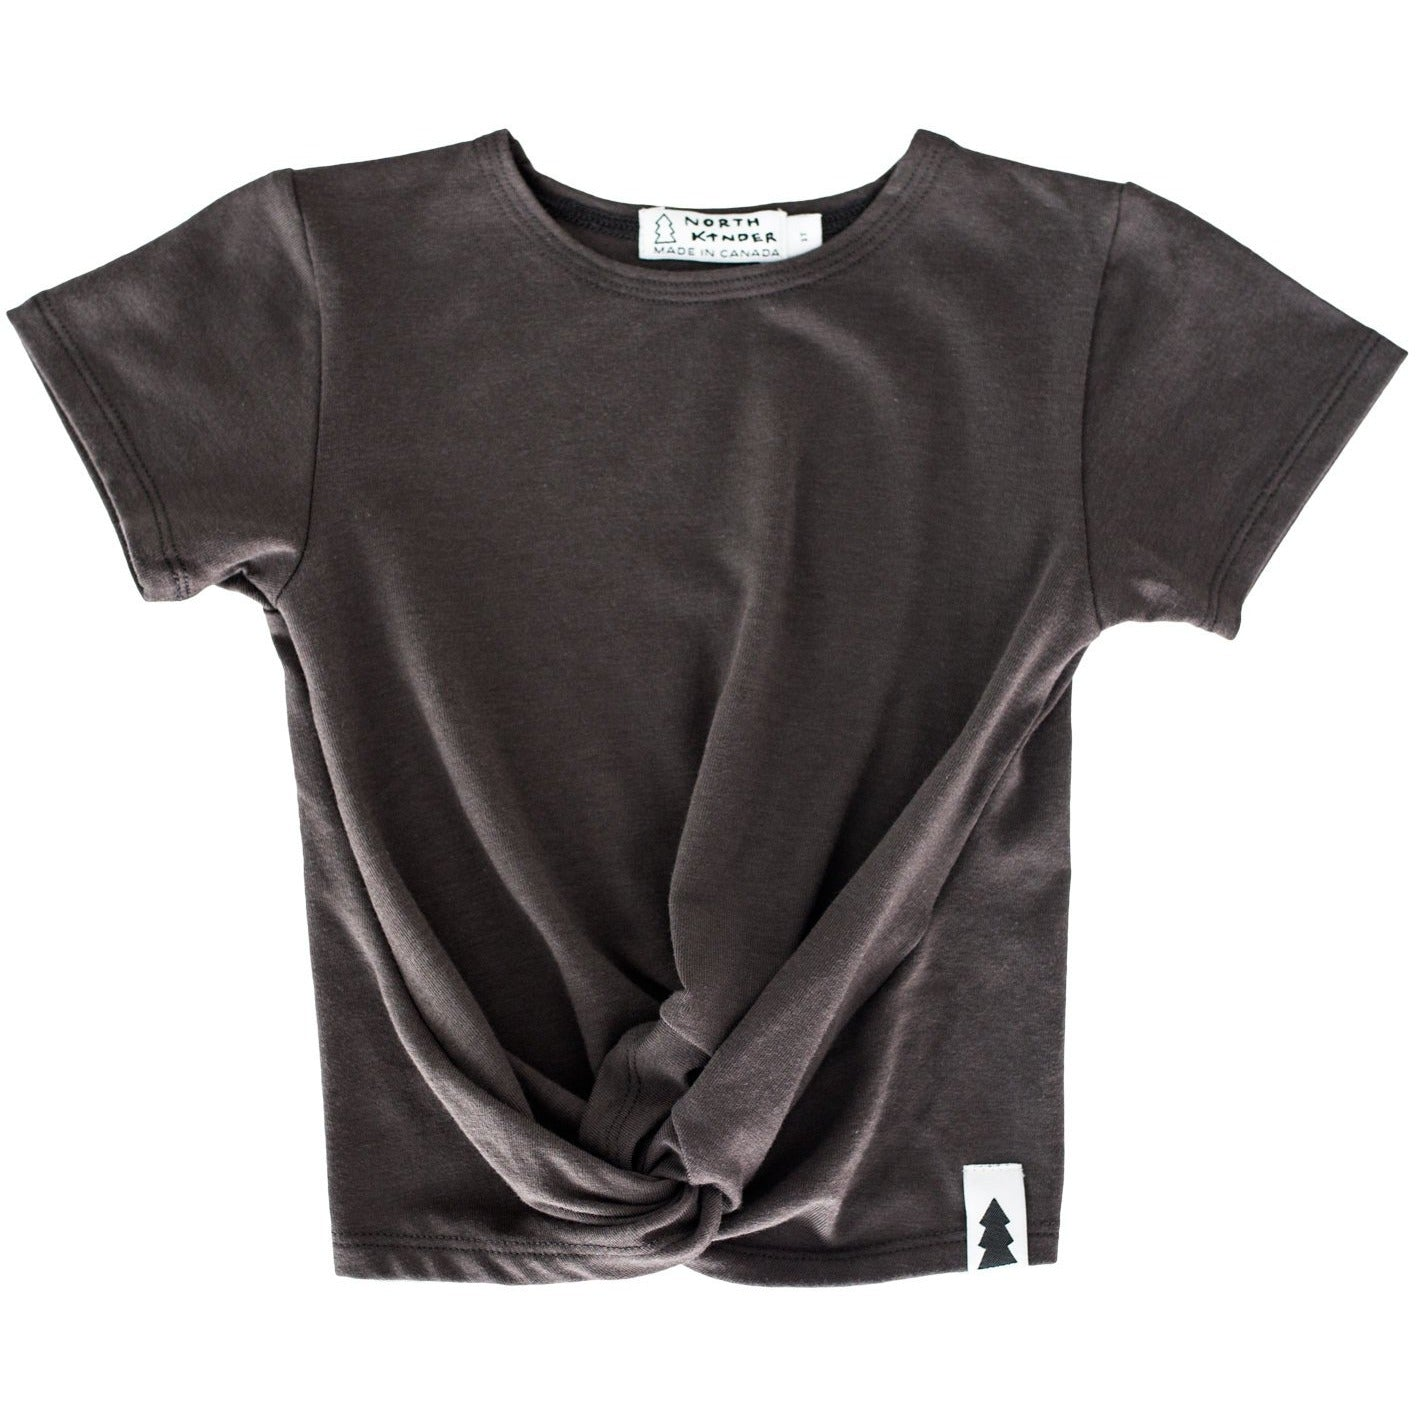 Knotted Tee (ash black) - North Kinder